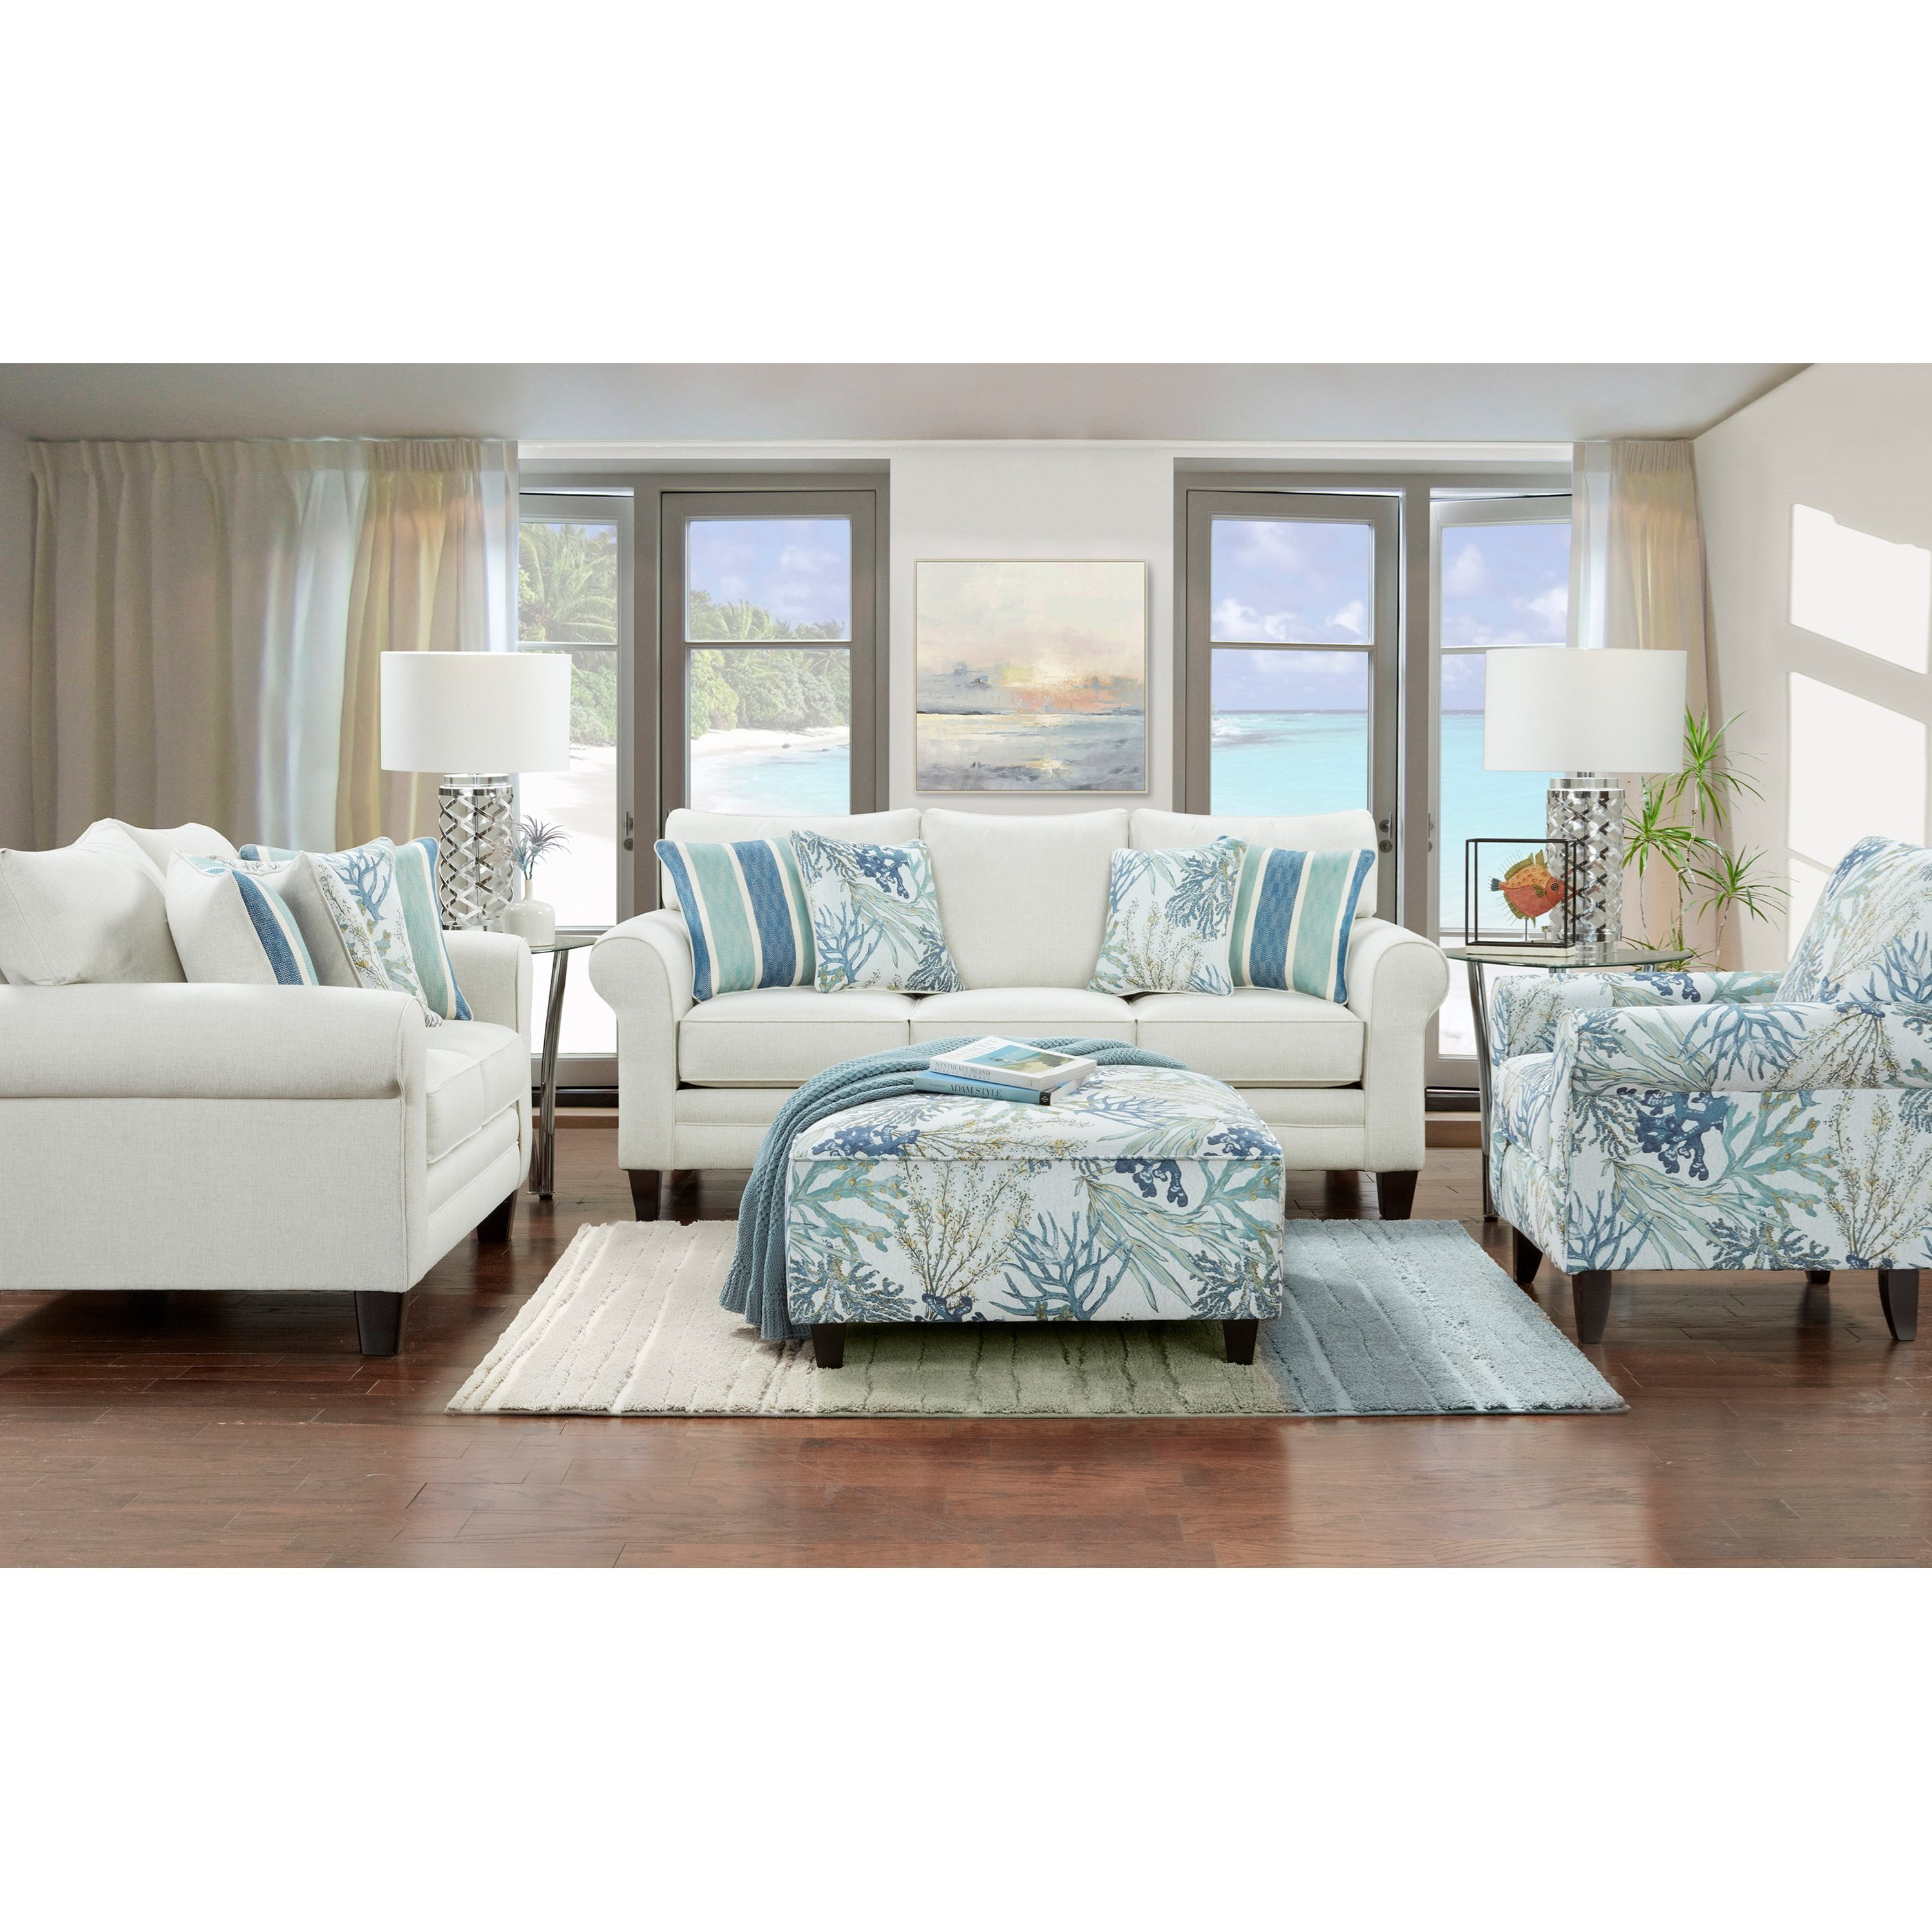 THE 1140 GRANDE GLACIER (REVOLUTION) Living Room Group by Fusion Furniture at Story & Lee Furniture